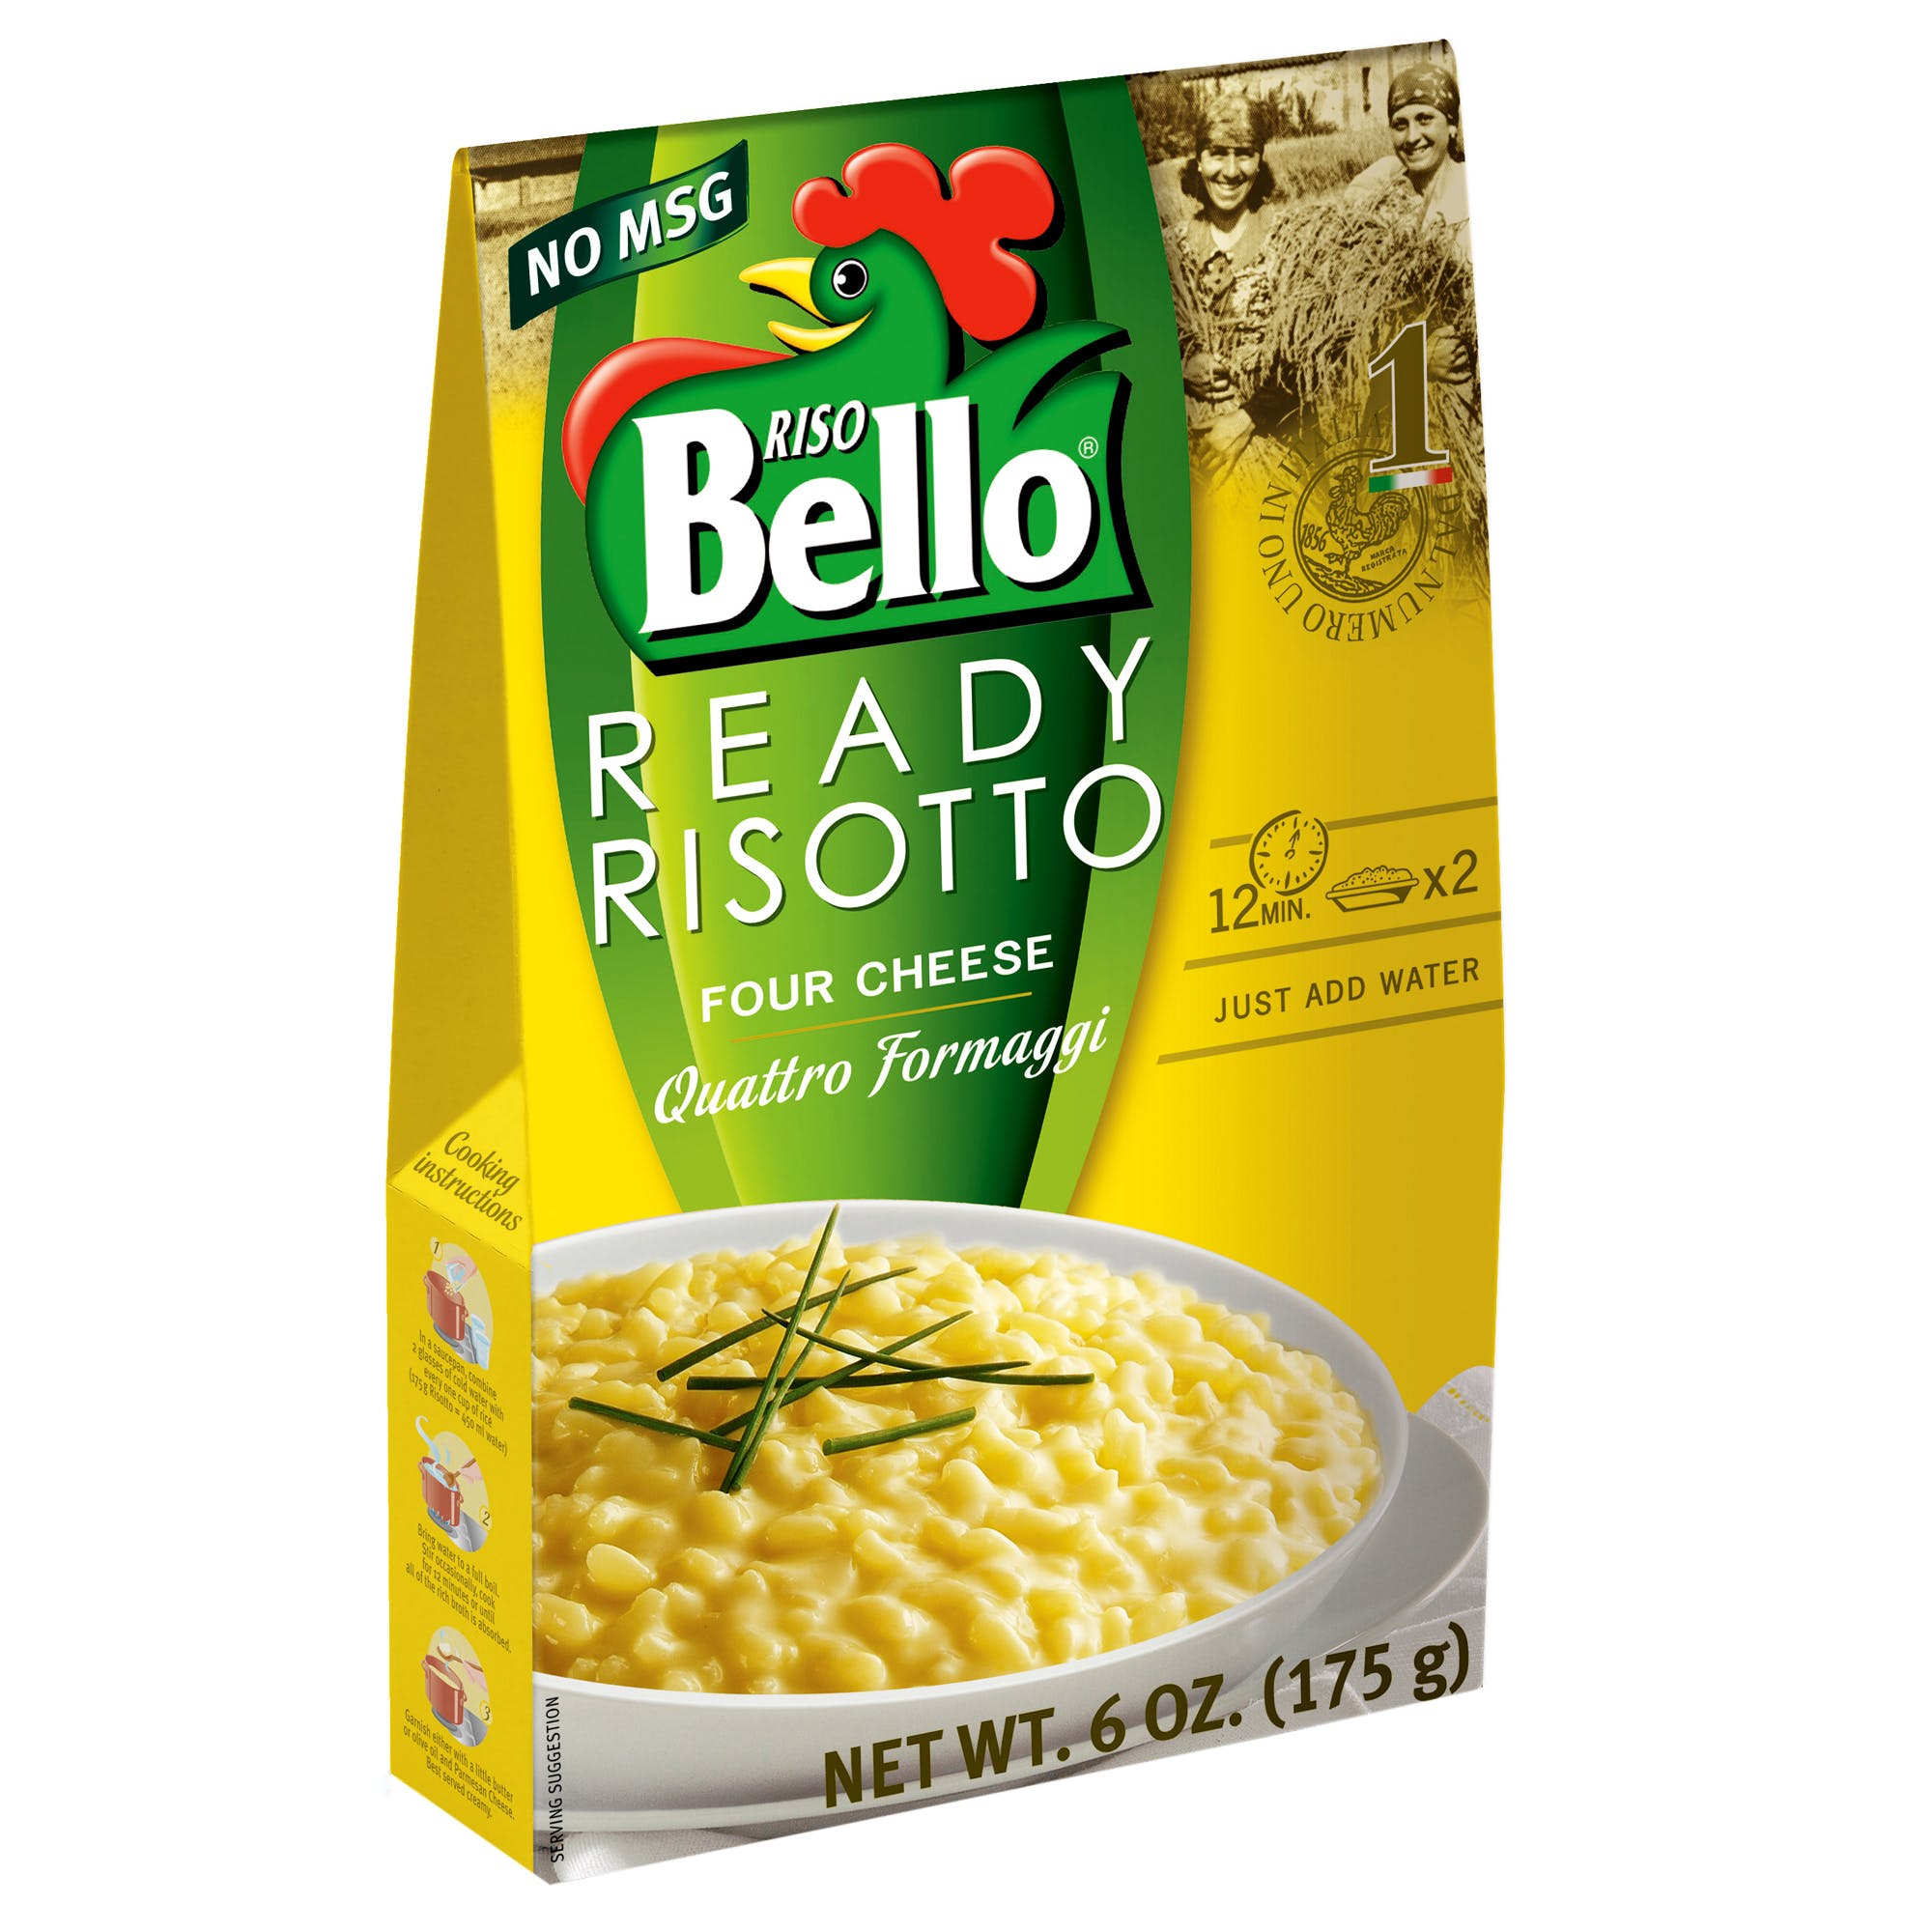 Four Cheese Ready Risotto